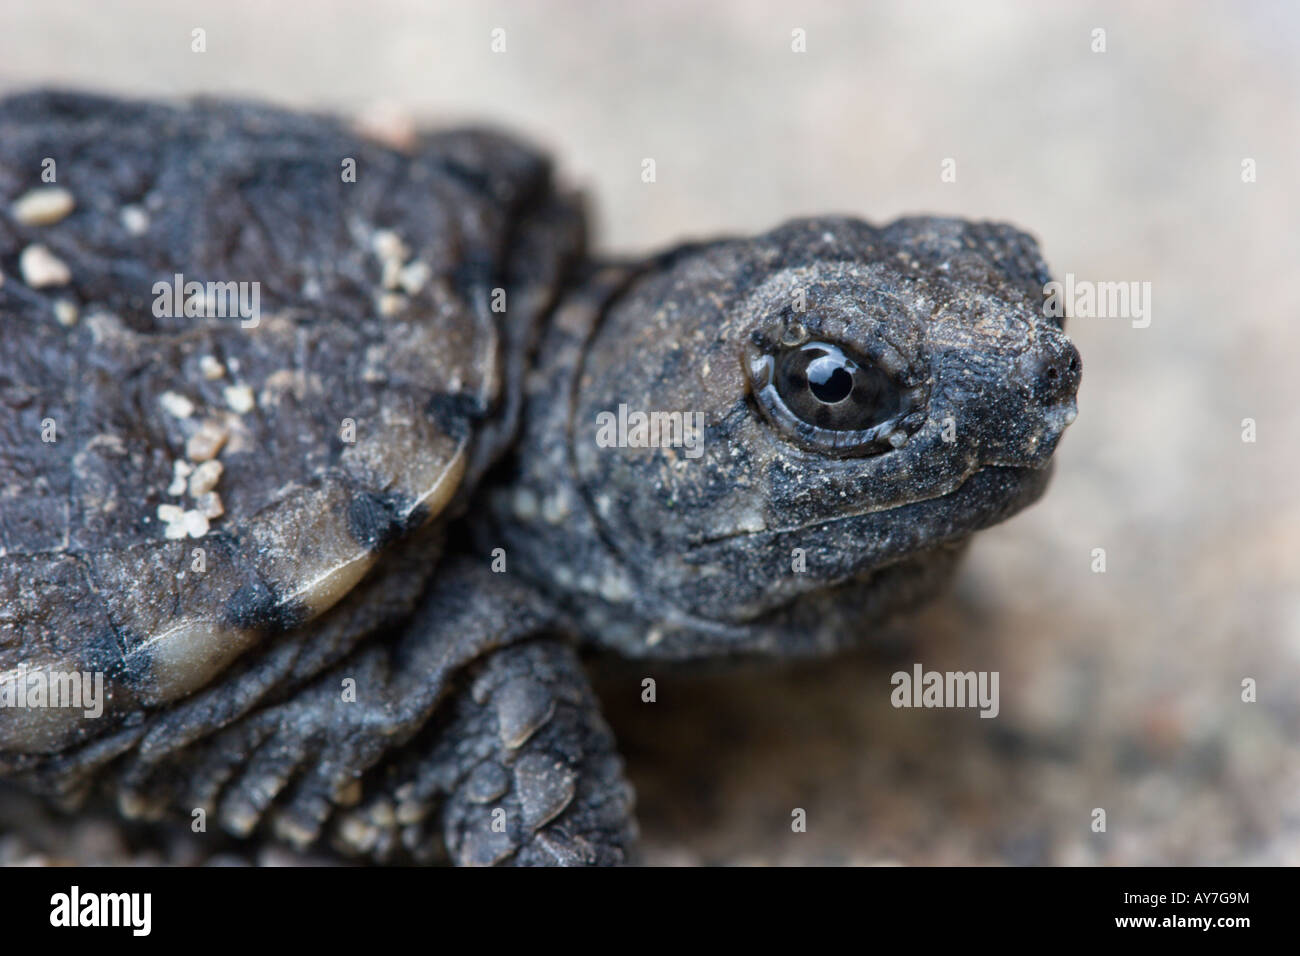 baby snapping turtle Stock Photo